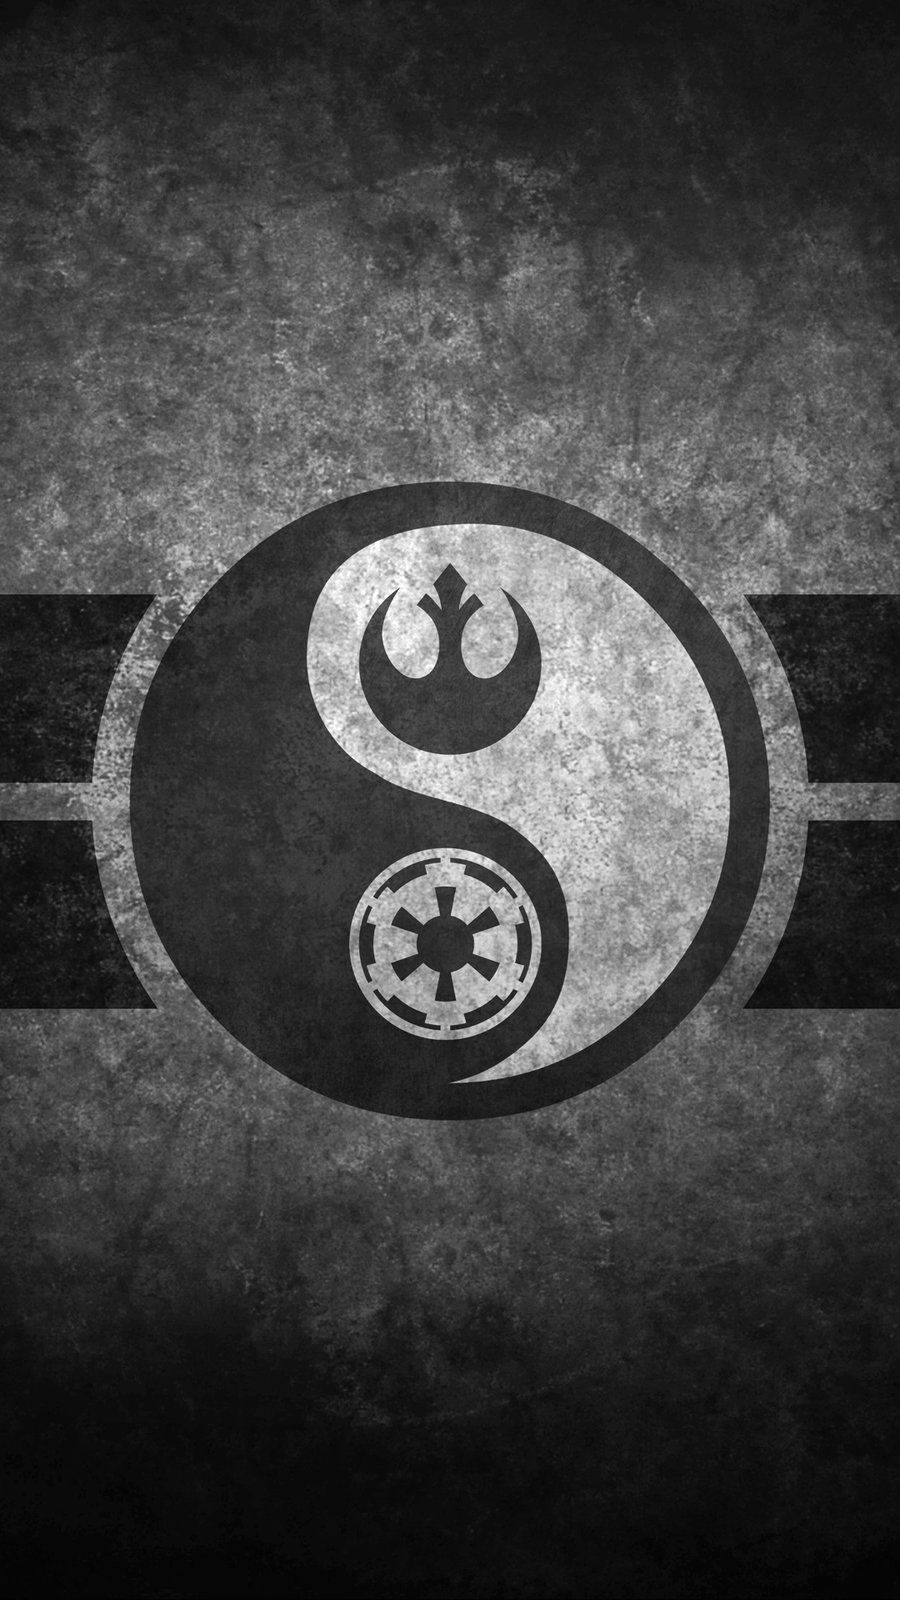 Sith Iphone Wallpapers Top Free Sith Iphone Backgrounds